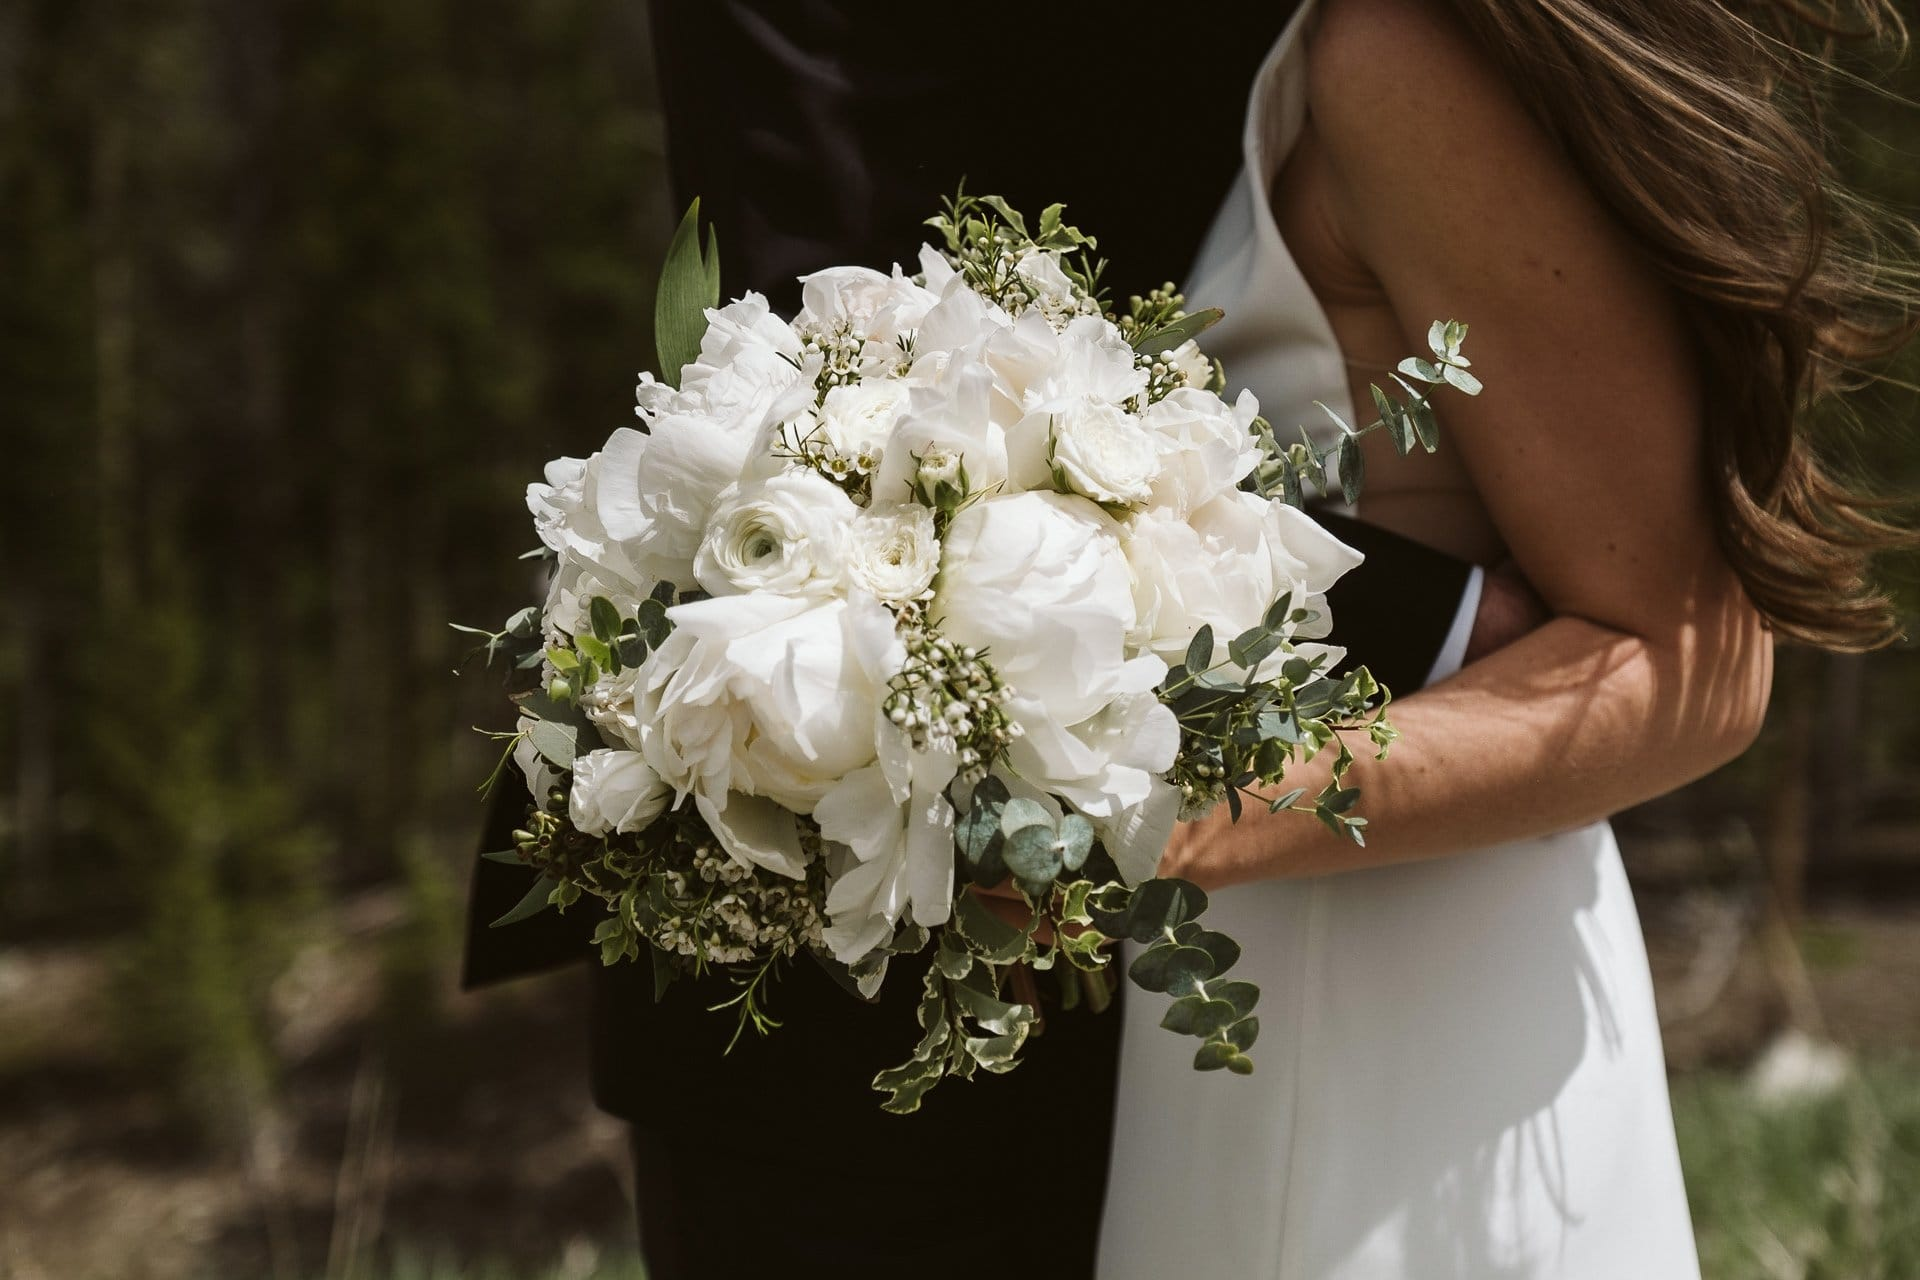 Wedding bouquet with white flowers and greenery by Petal and Bean in Breckenridge